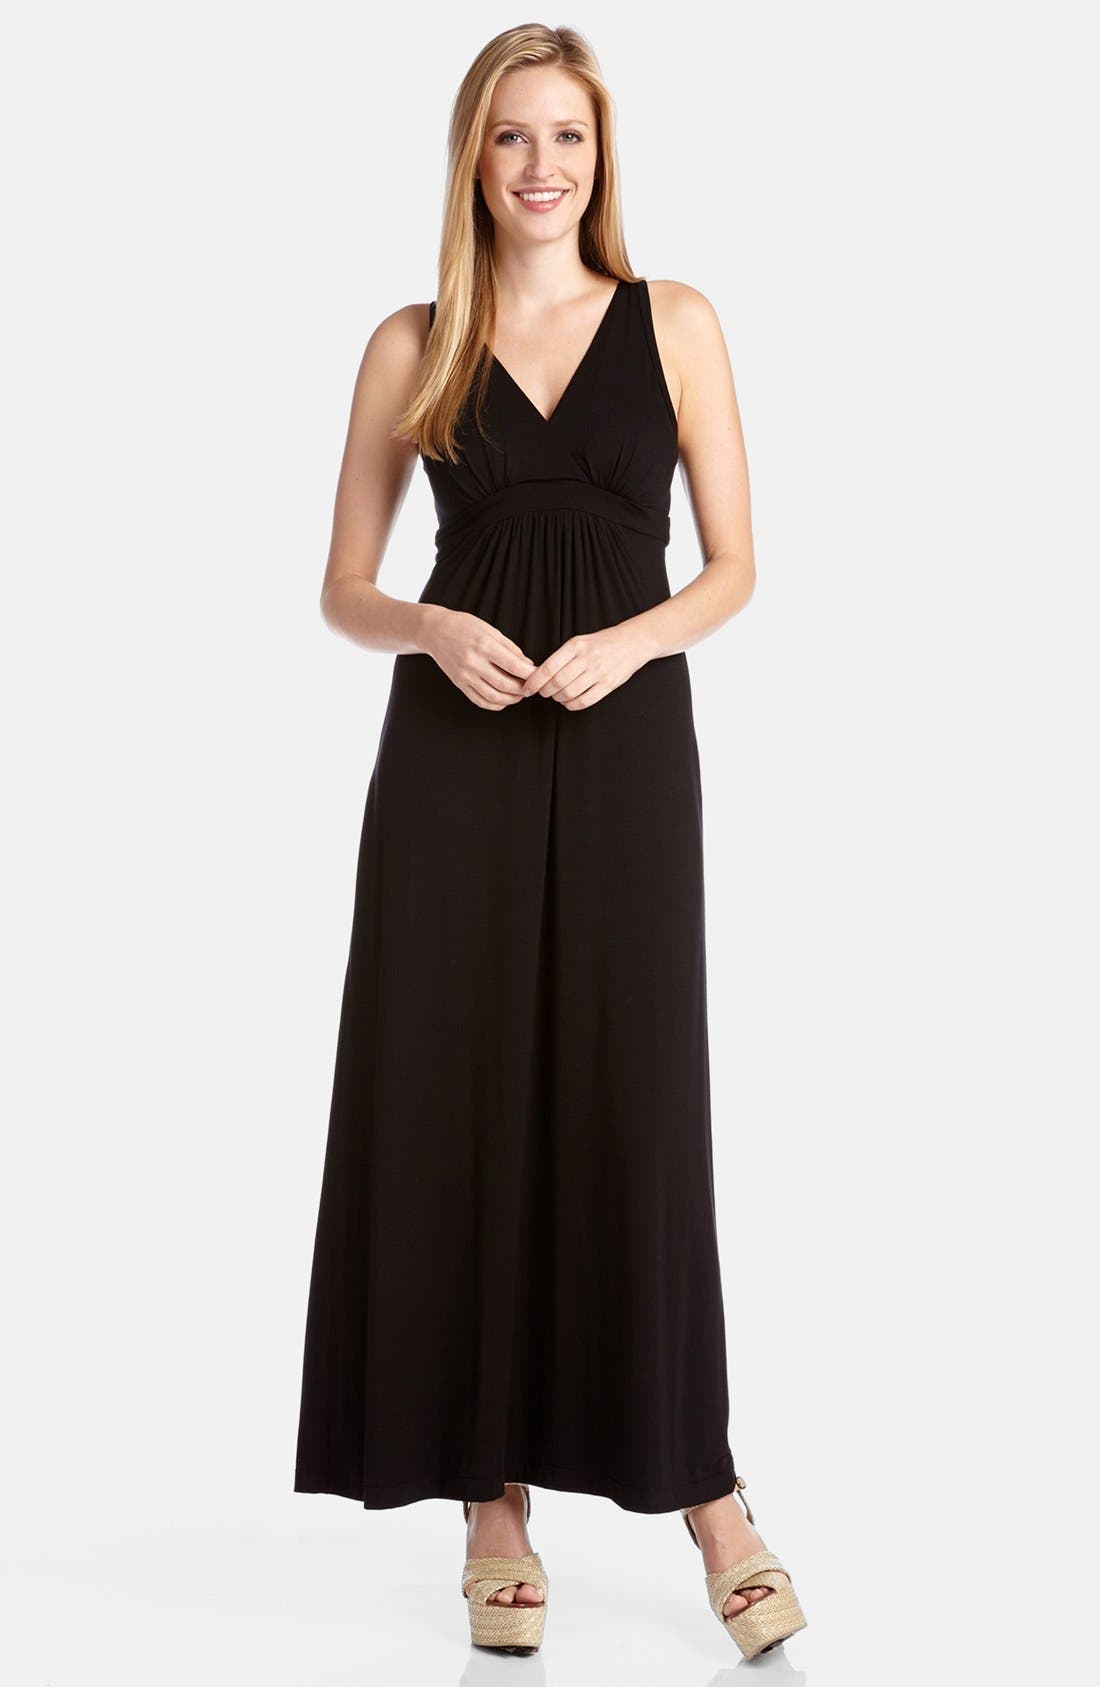 Alternate Image 1 Selected - Karen Kane 'Julie' Surplice Jersey Maxi Dress